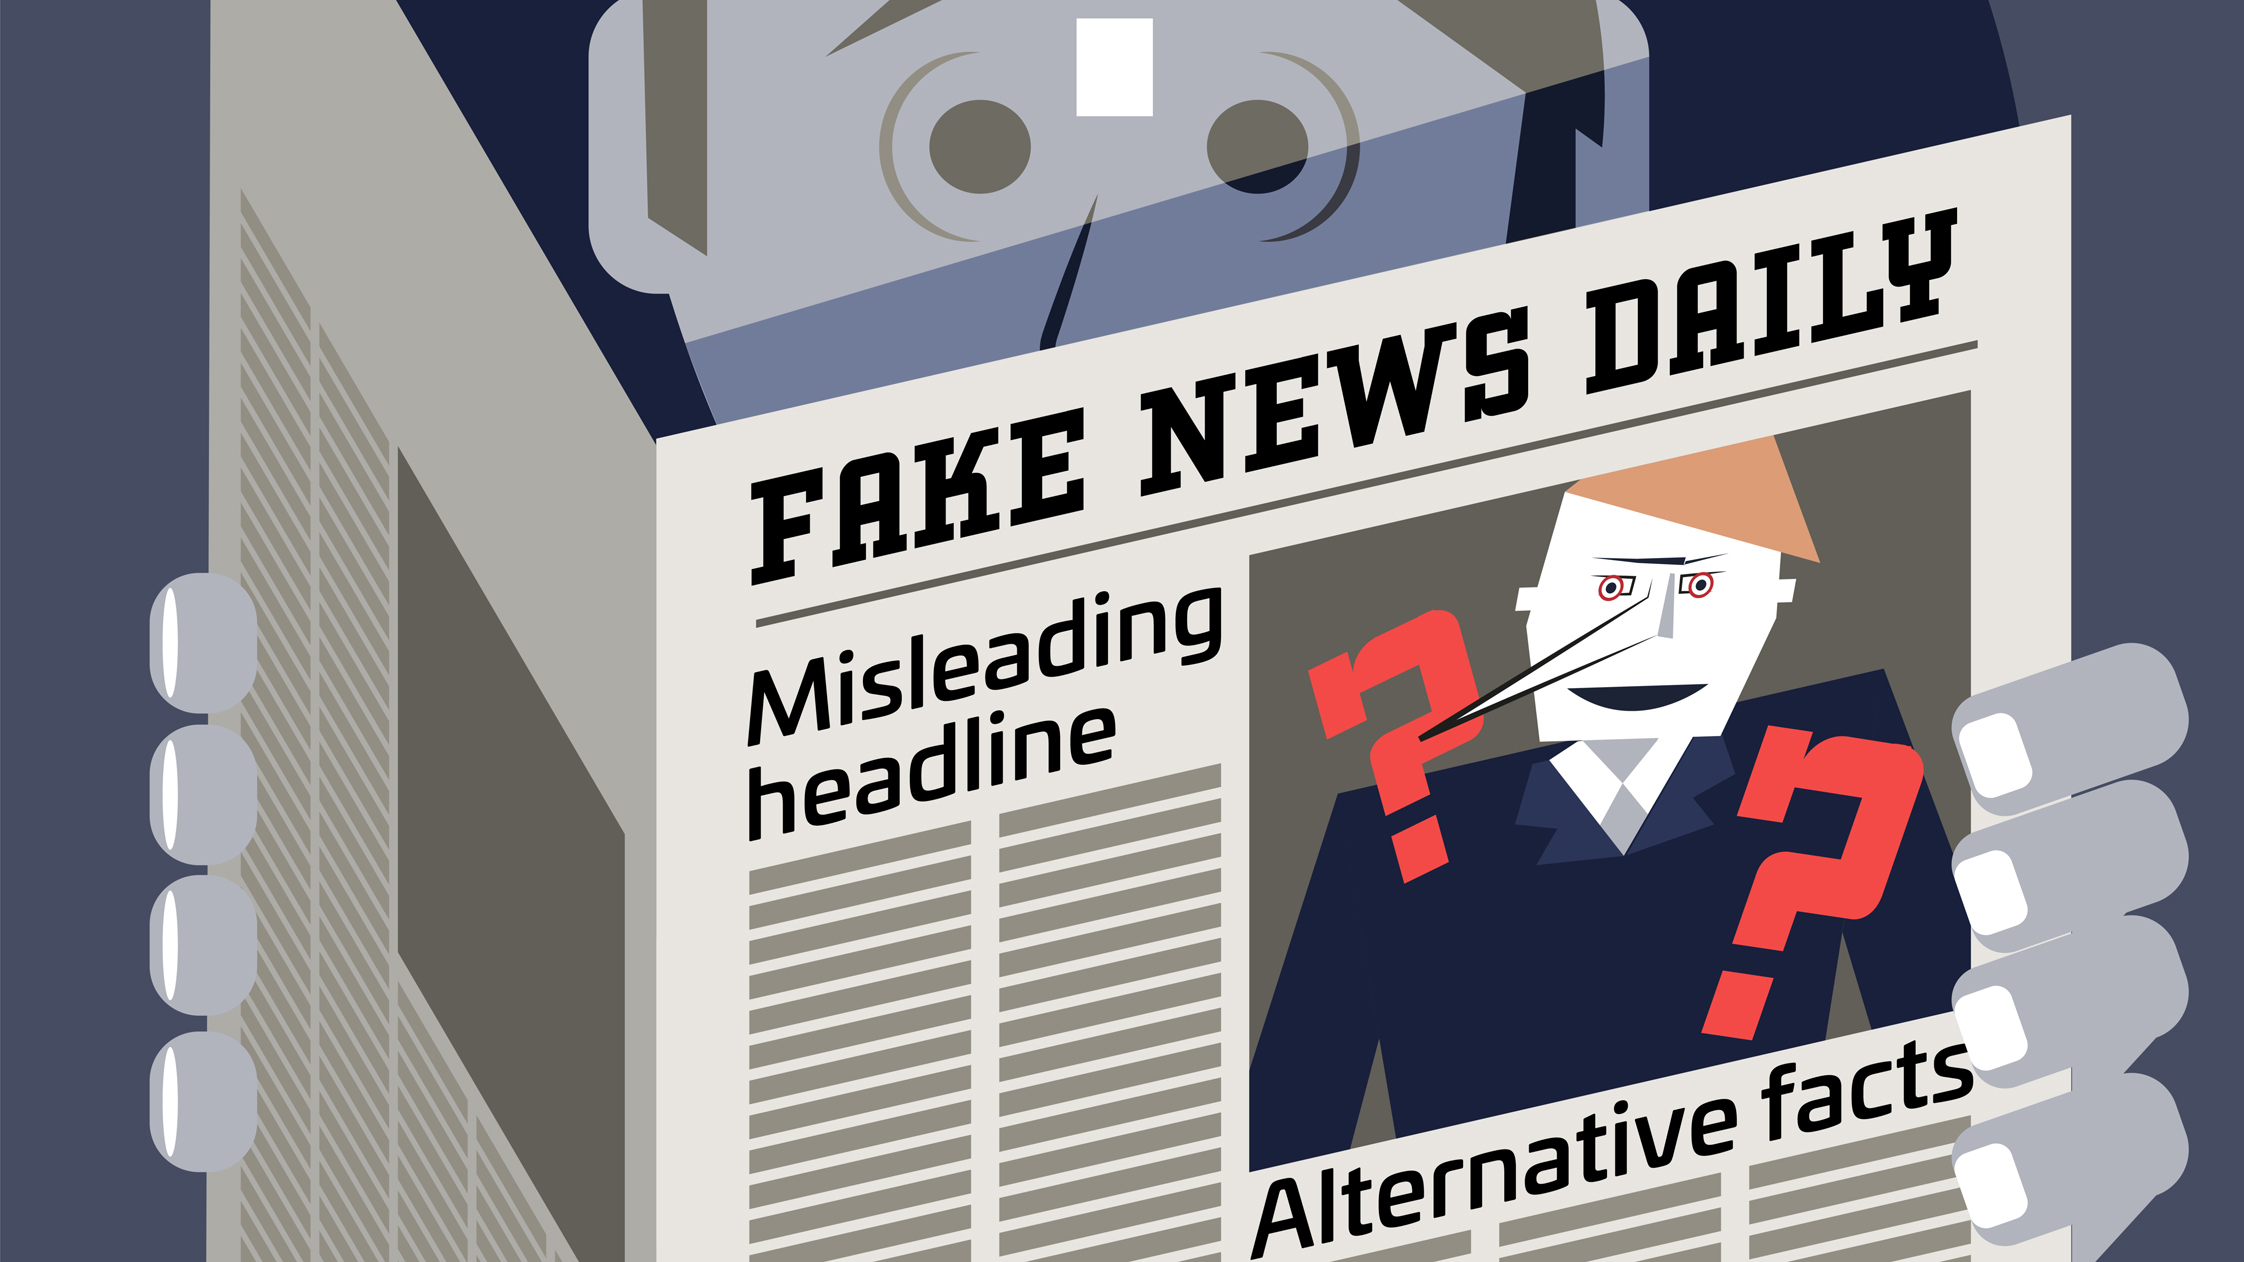 Fake news illustration.